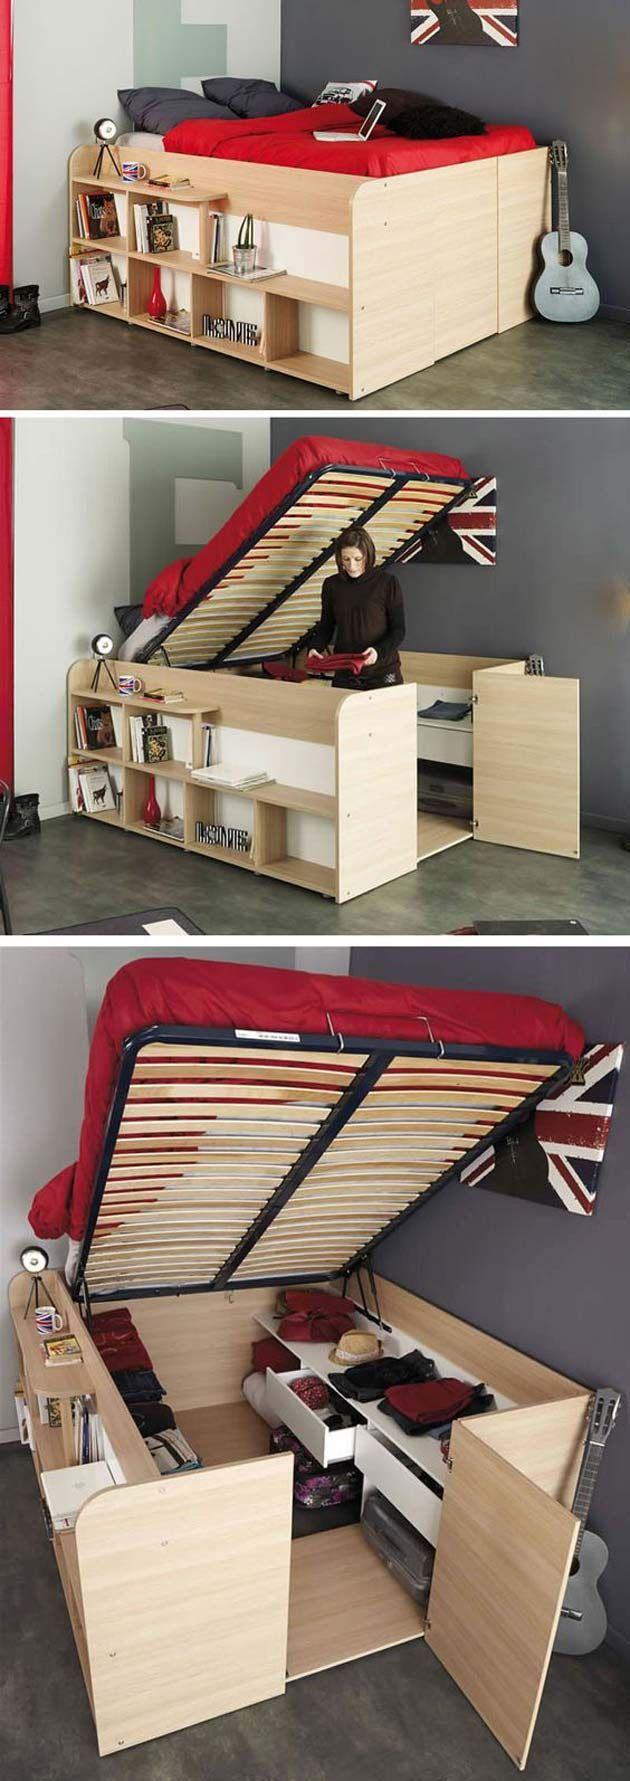 Photo of 31 ideas for small spaces to maximize your small bedroom – New Ideas